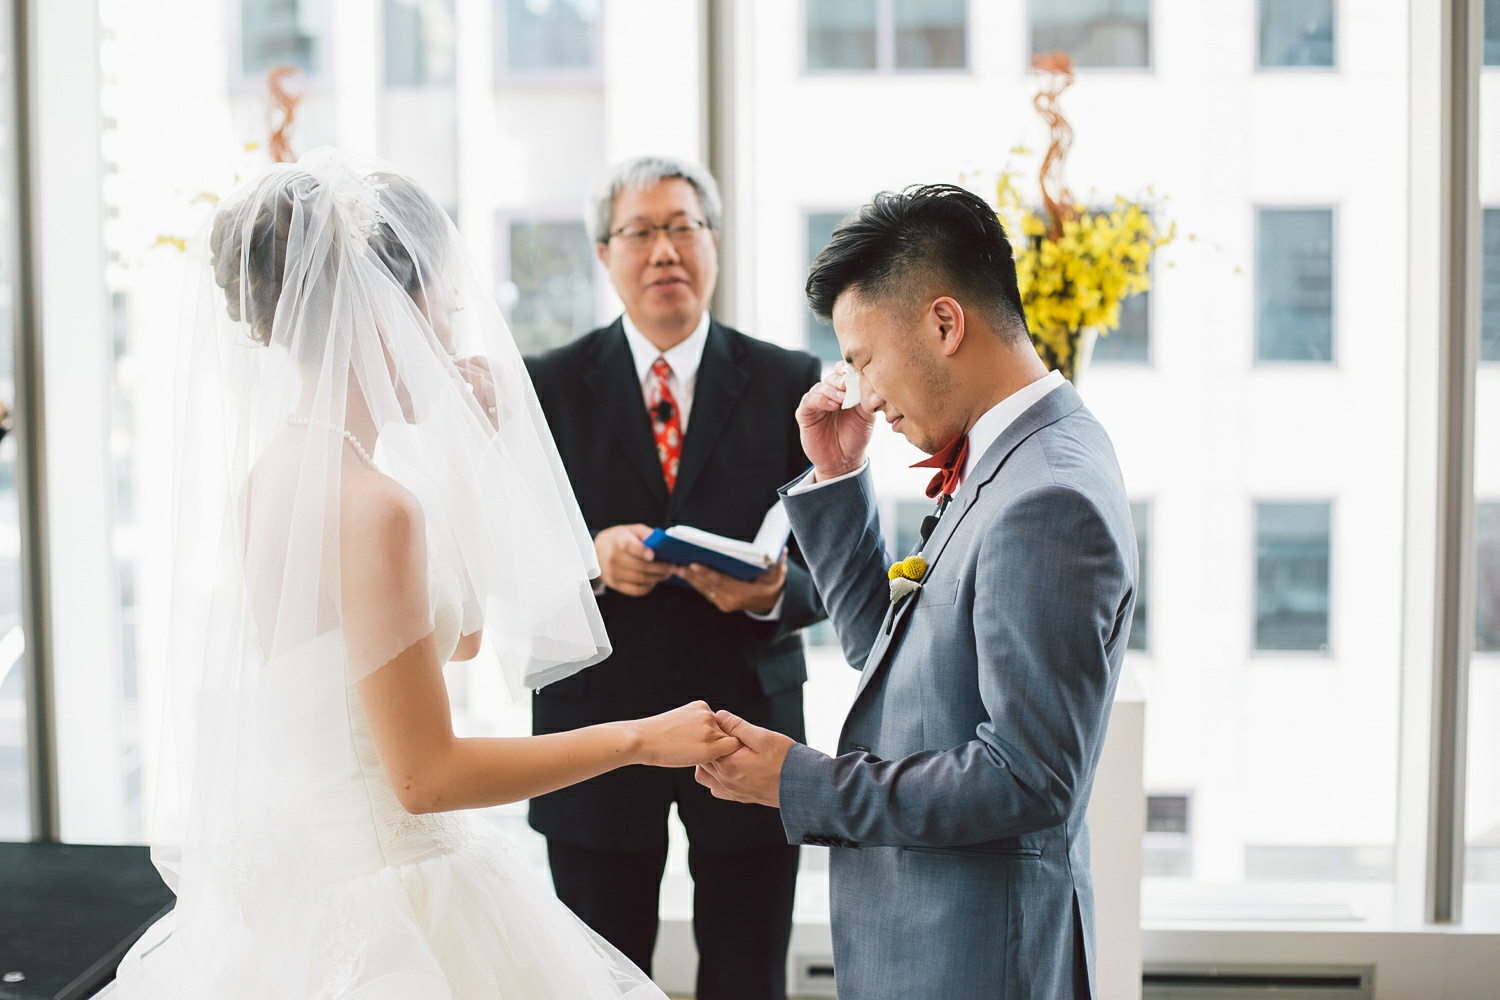 groom crying at the wedding ceremony